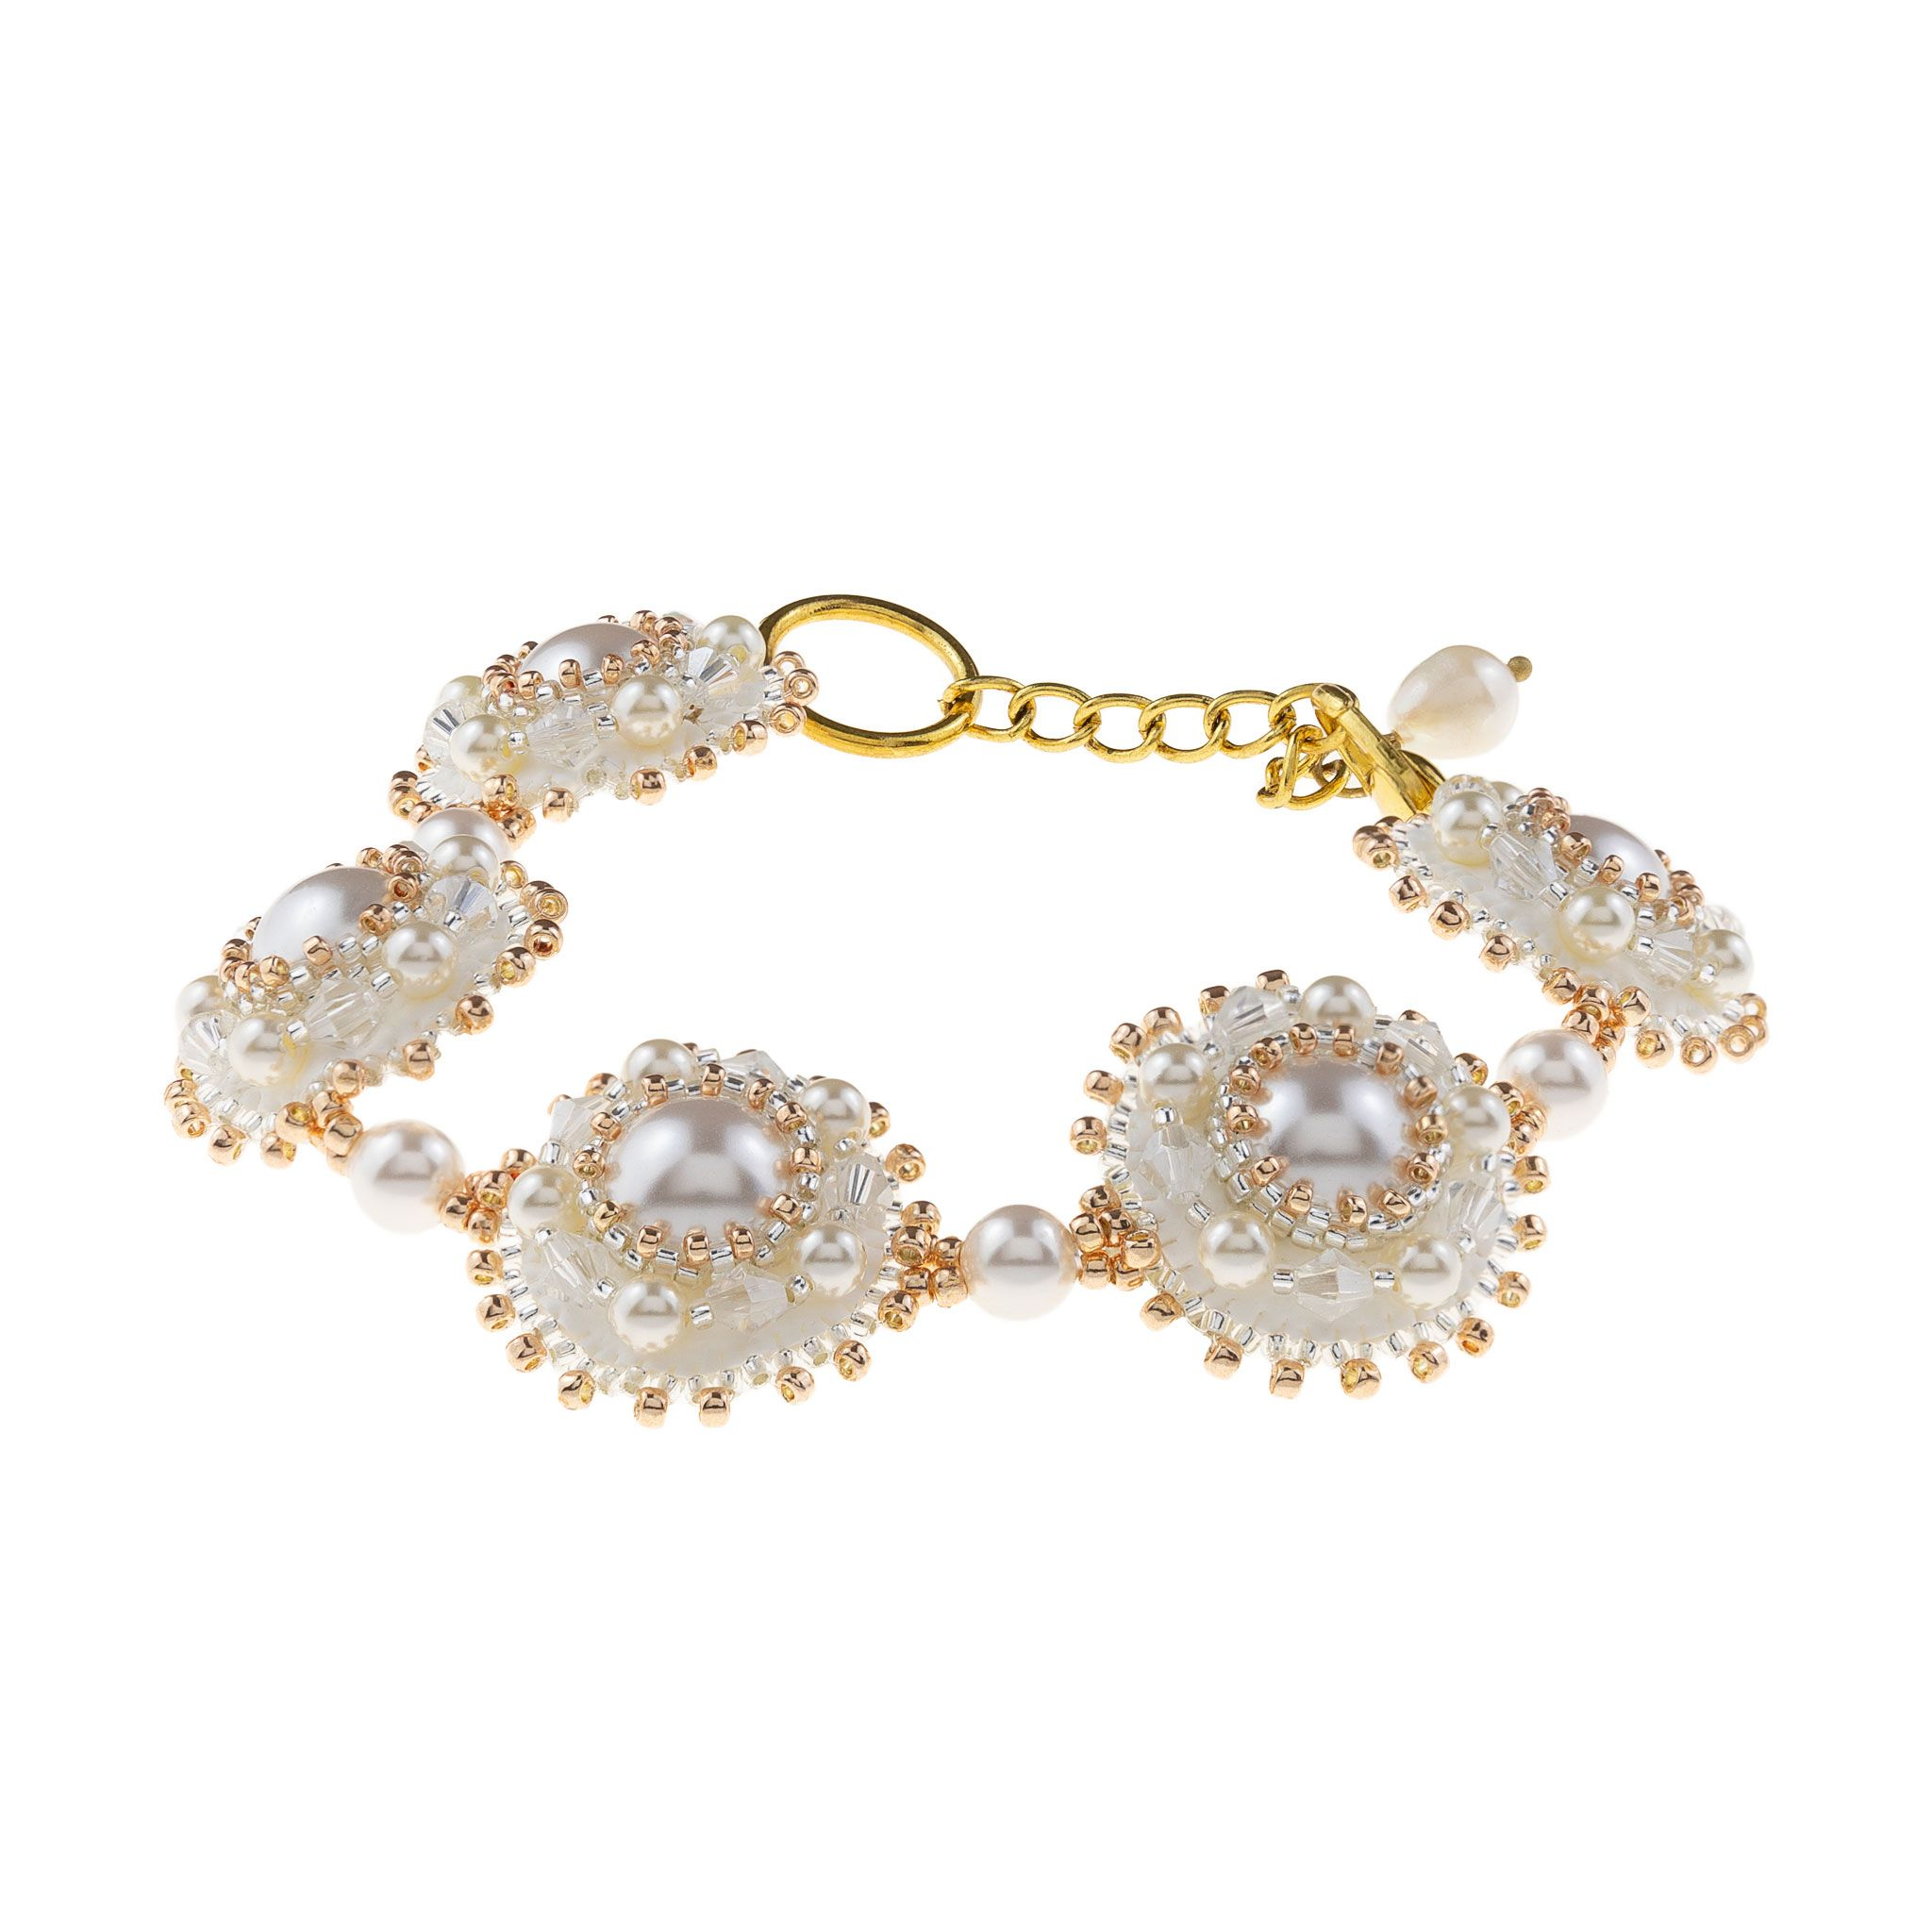 Touch of Luxury | Handmade Jewellery Art Avenue | One-of-a-kind bracelet with Swarovski crystals and pearls